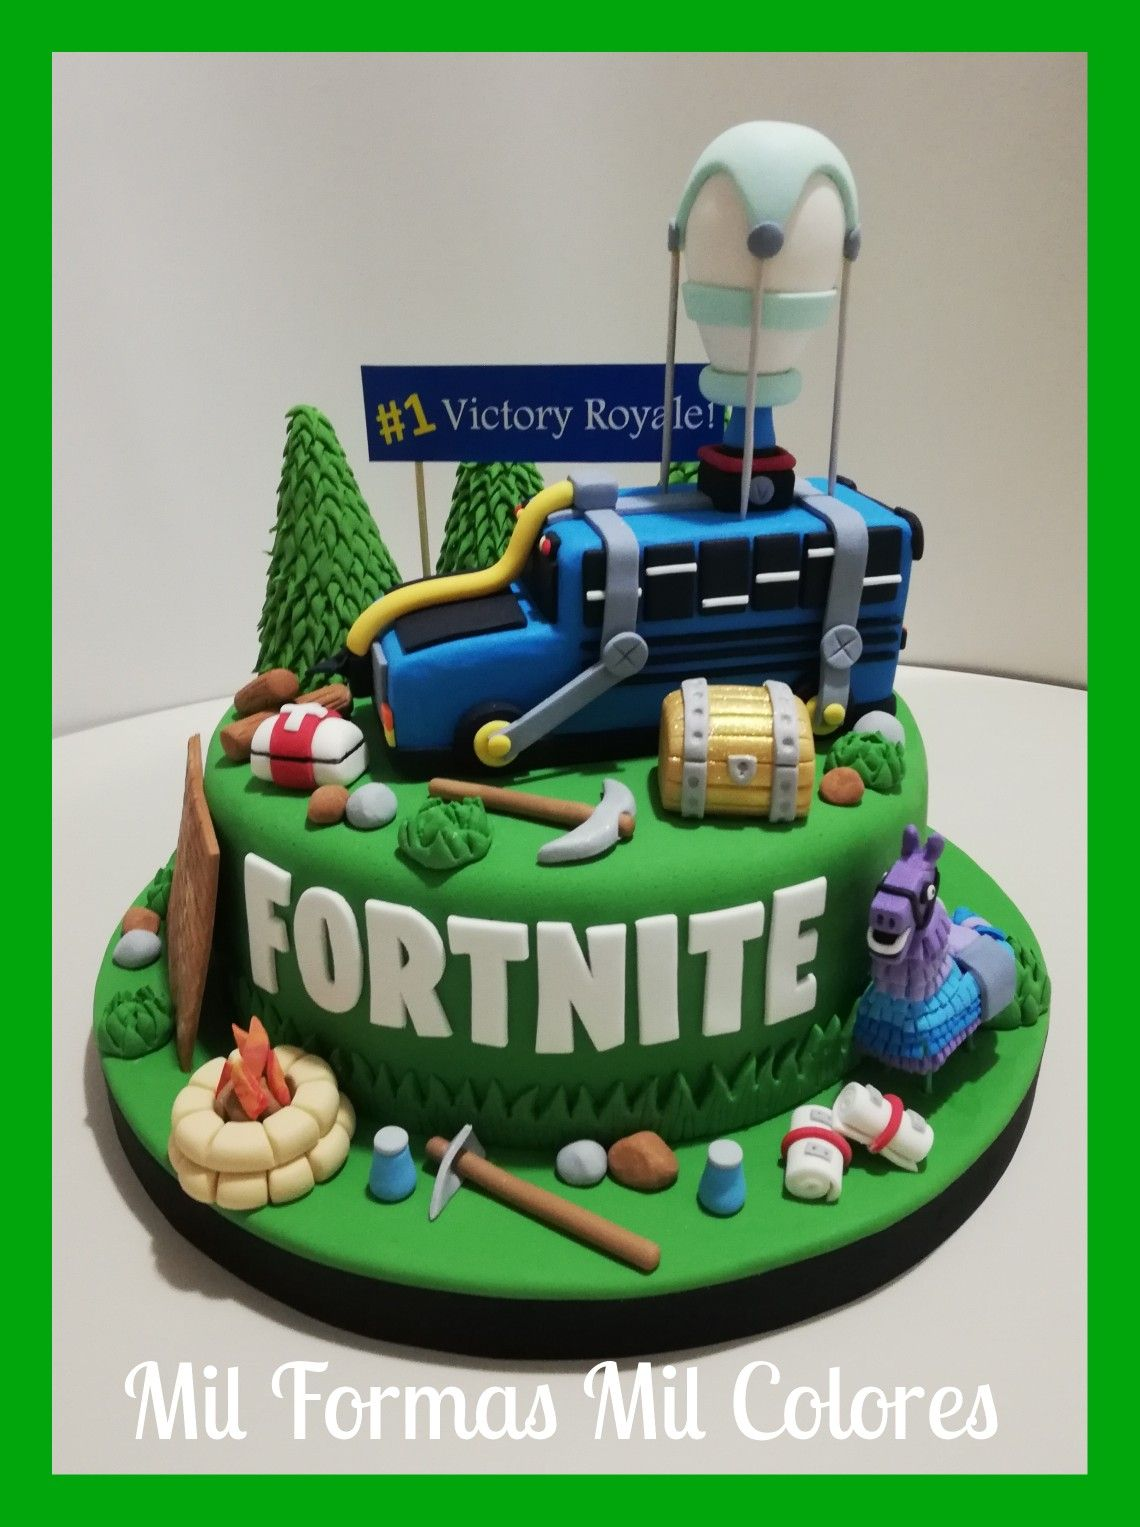 Fortnite Cake by Mil Formas Mil Colores